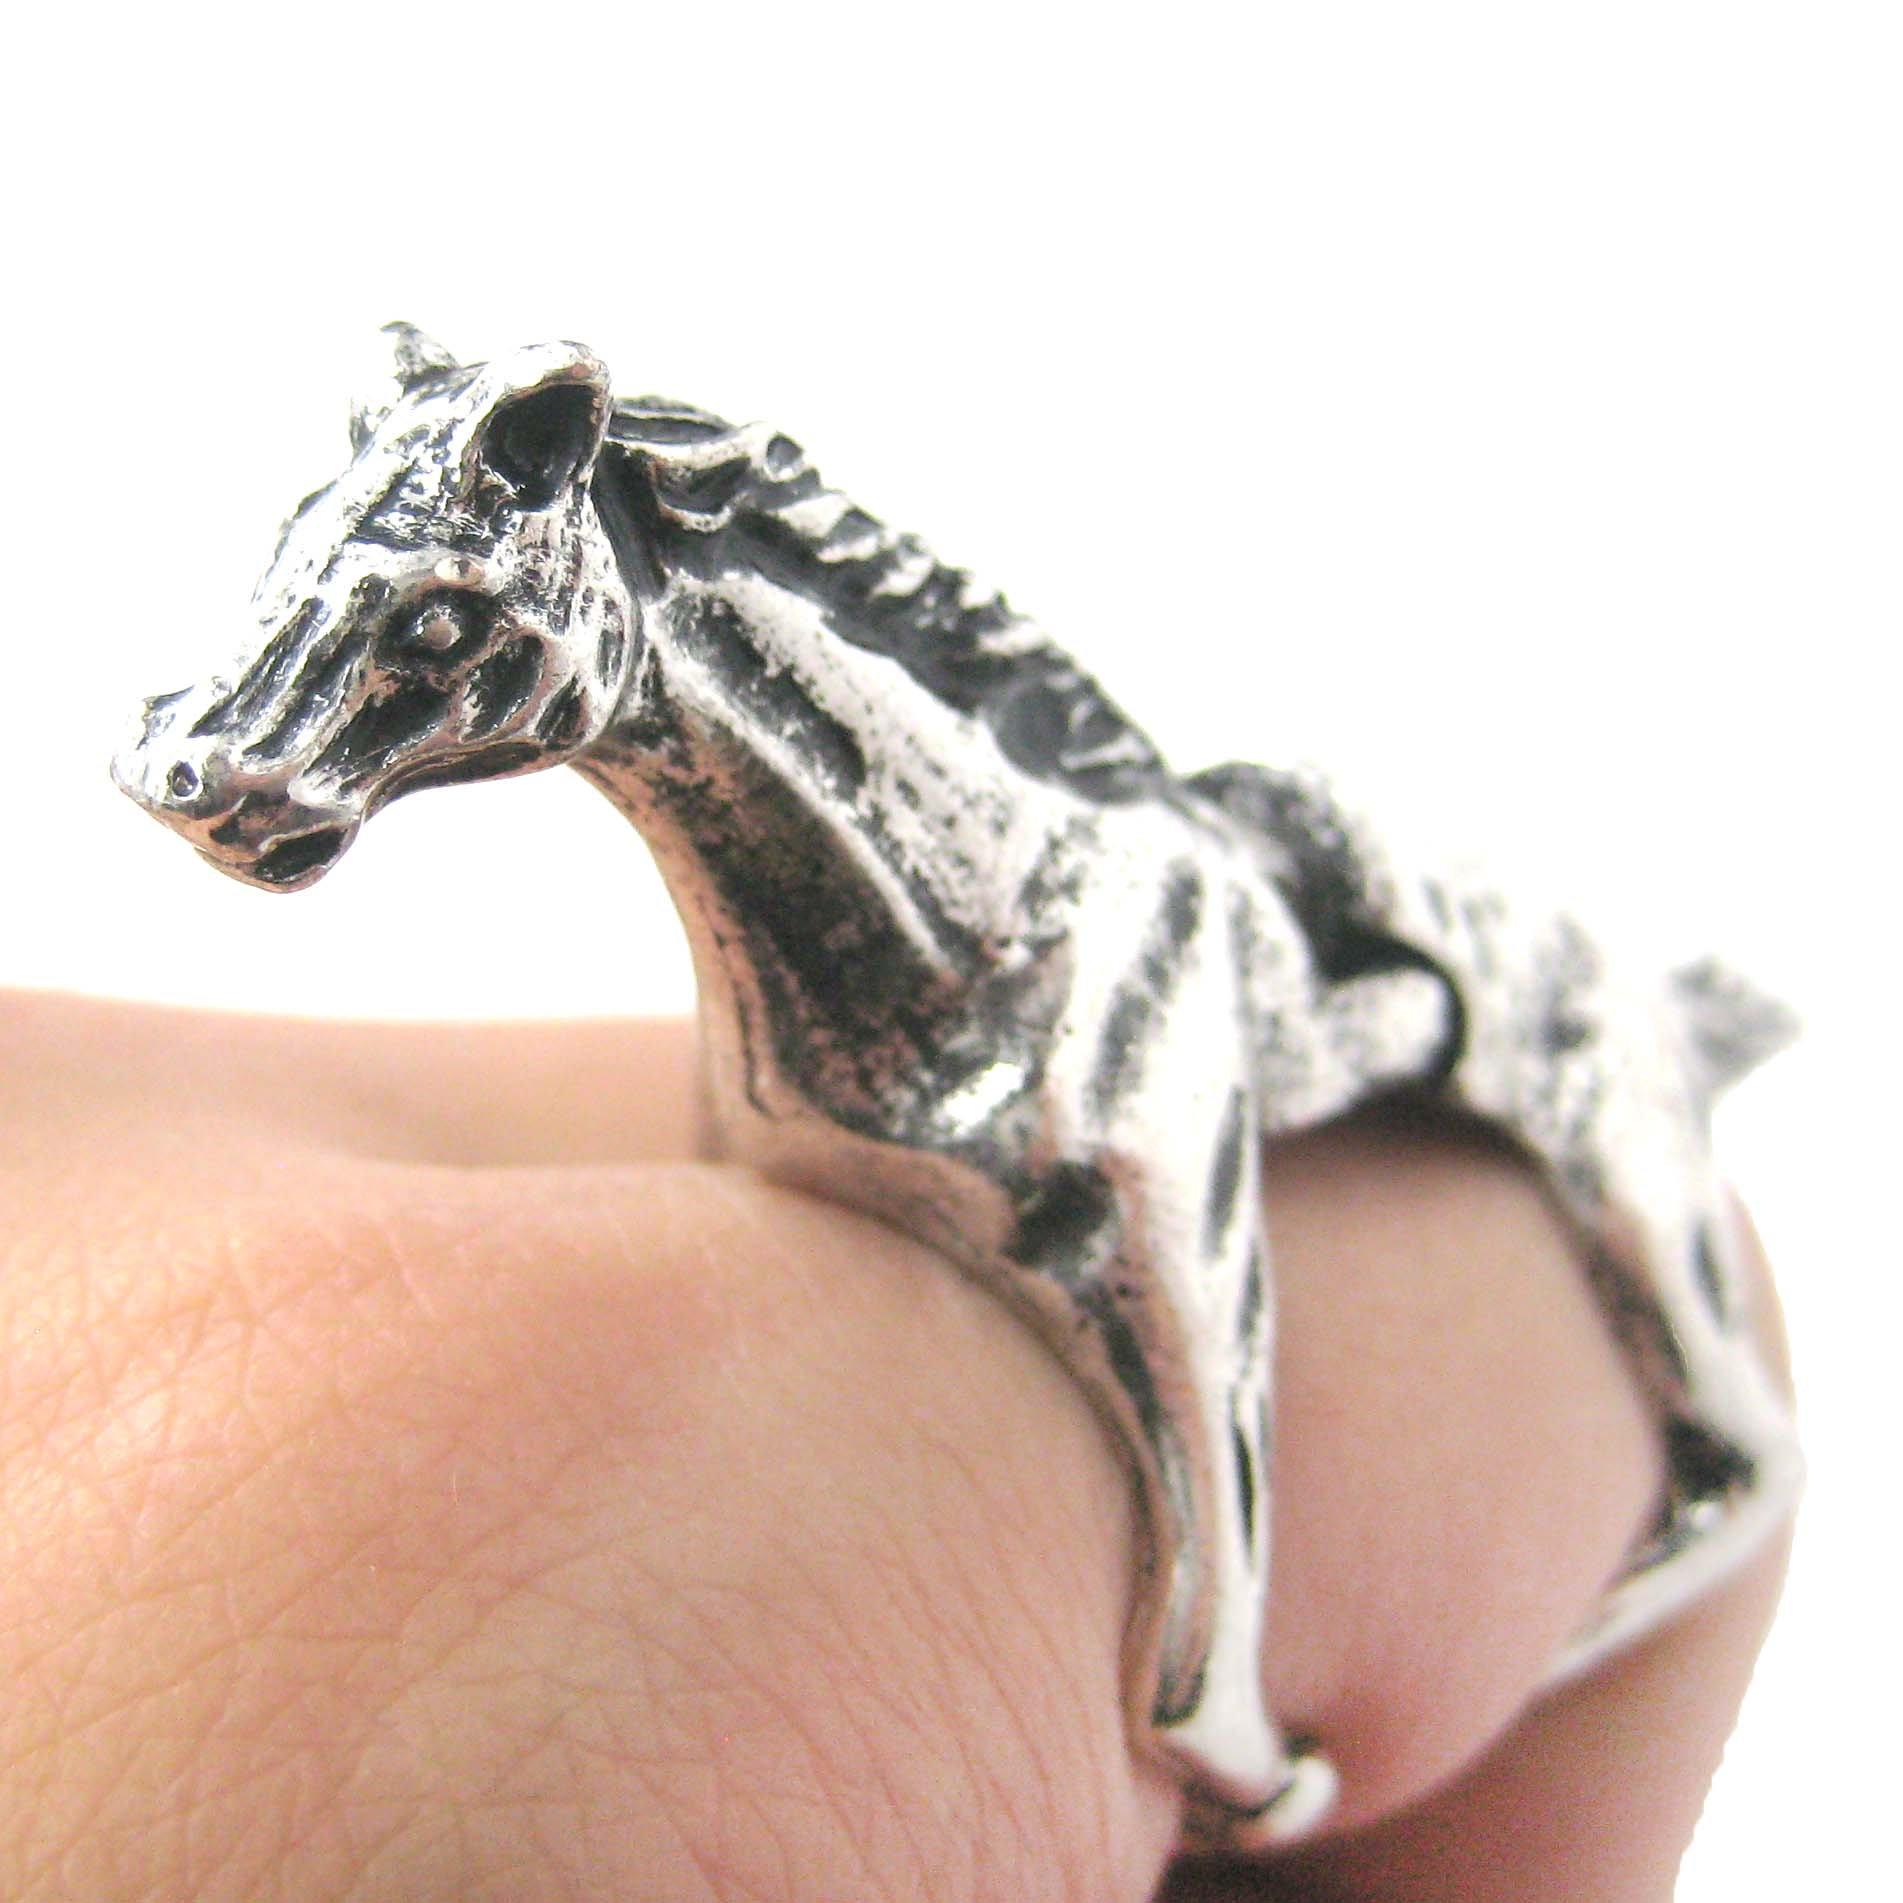 detailed pony shaped animal armor joint knuckle ring